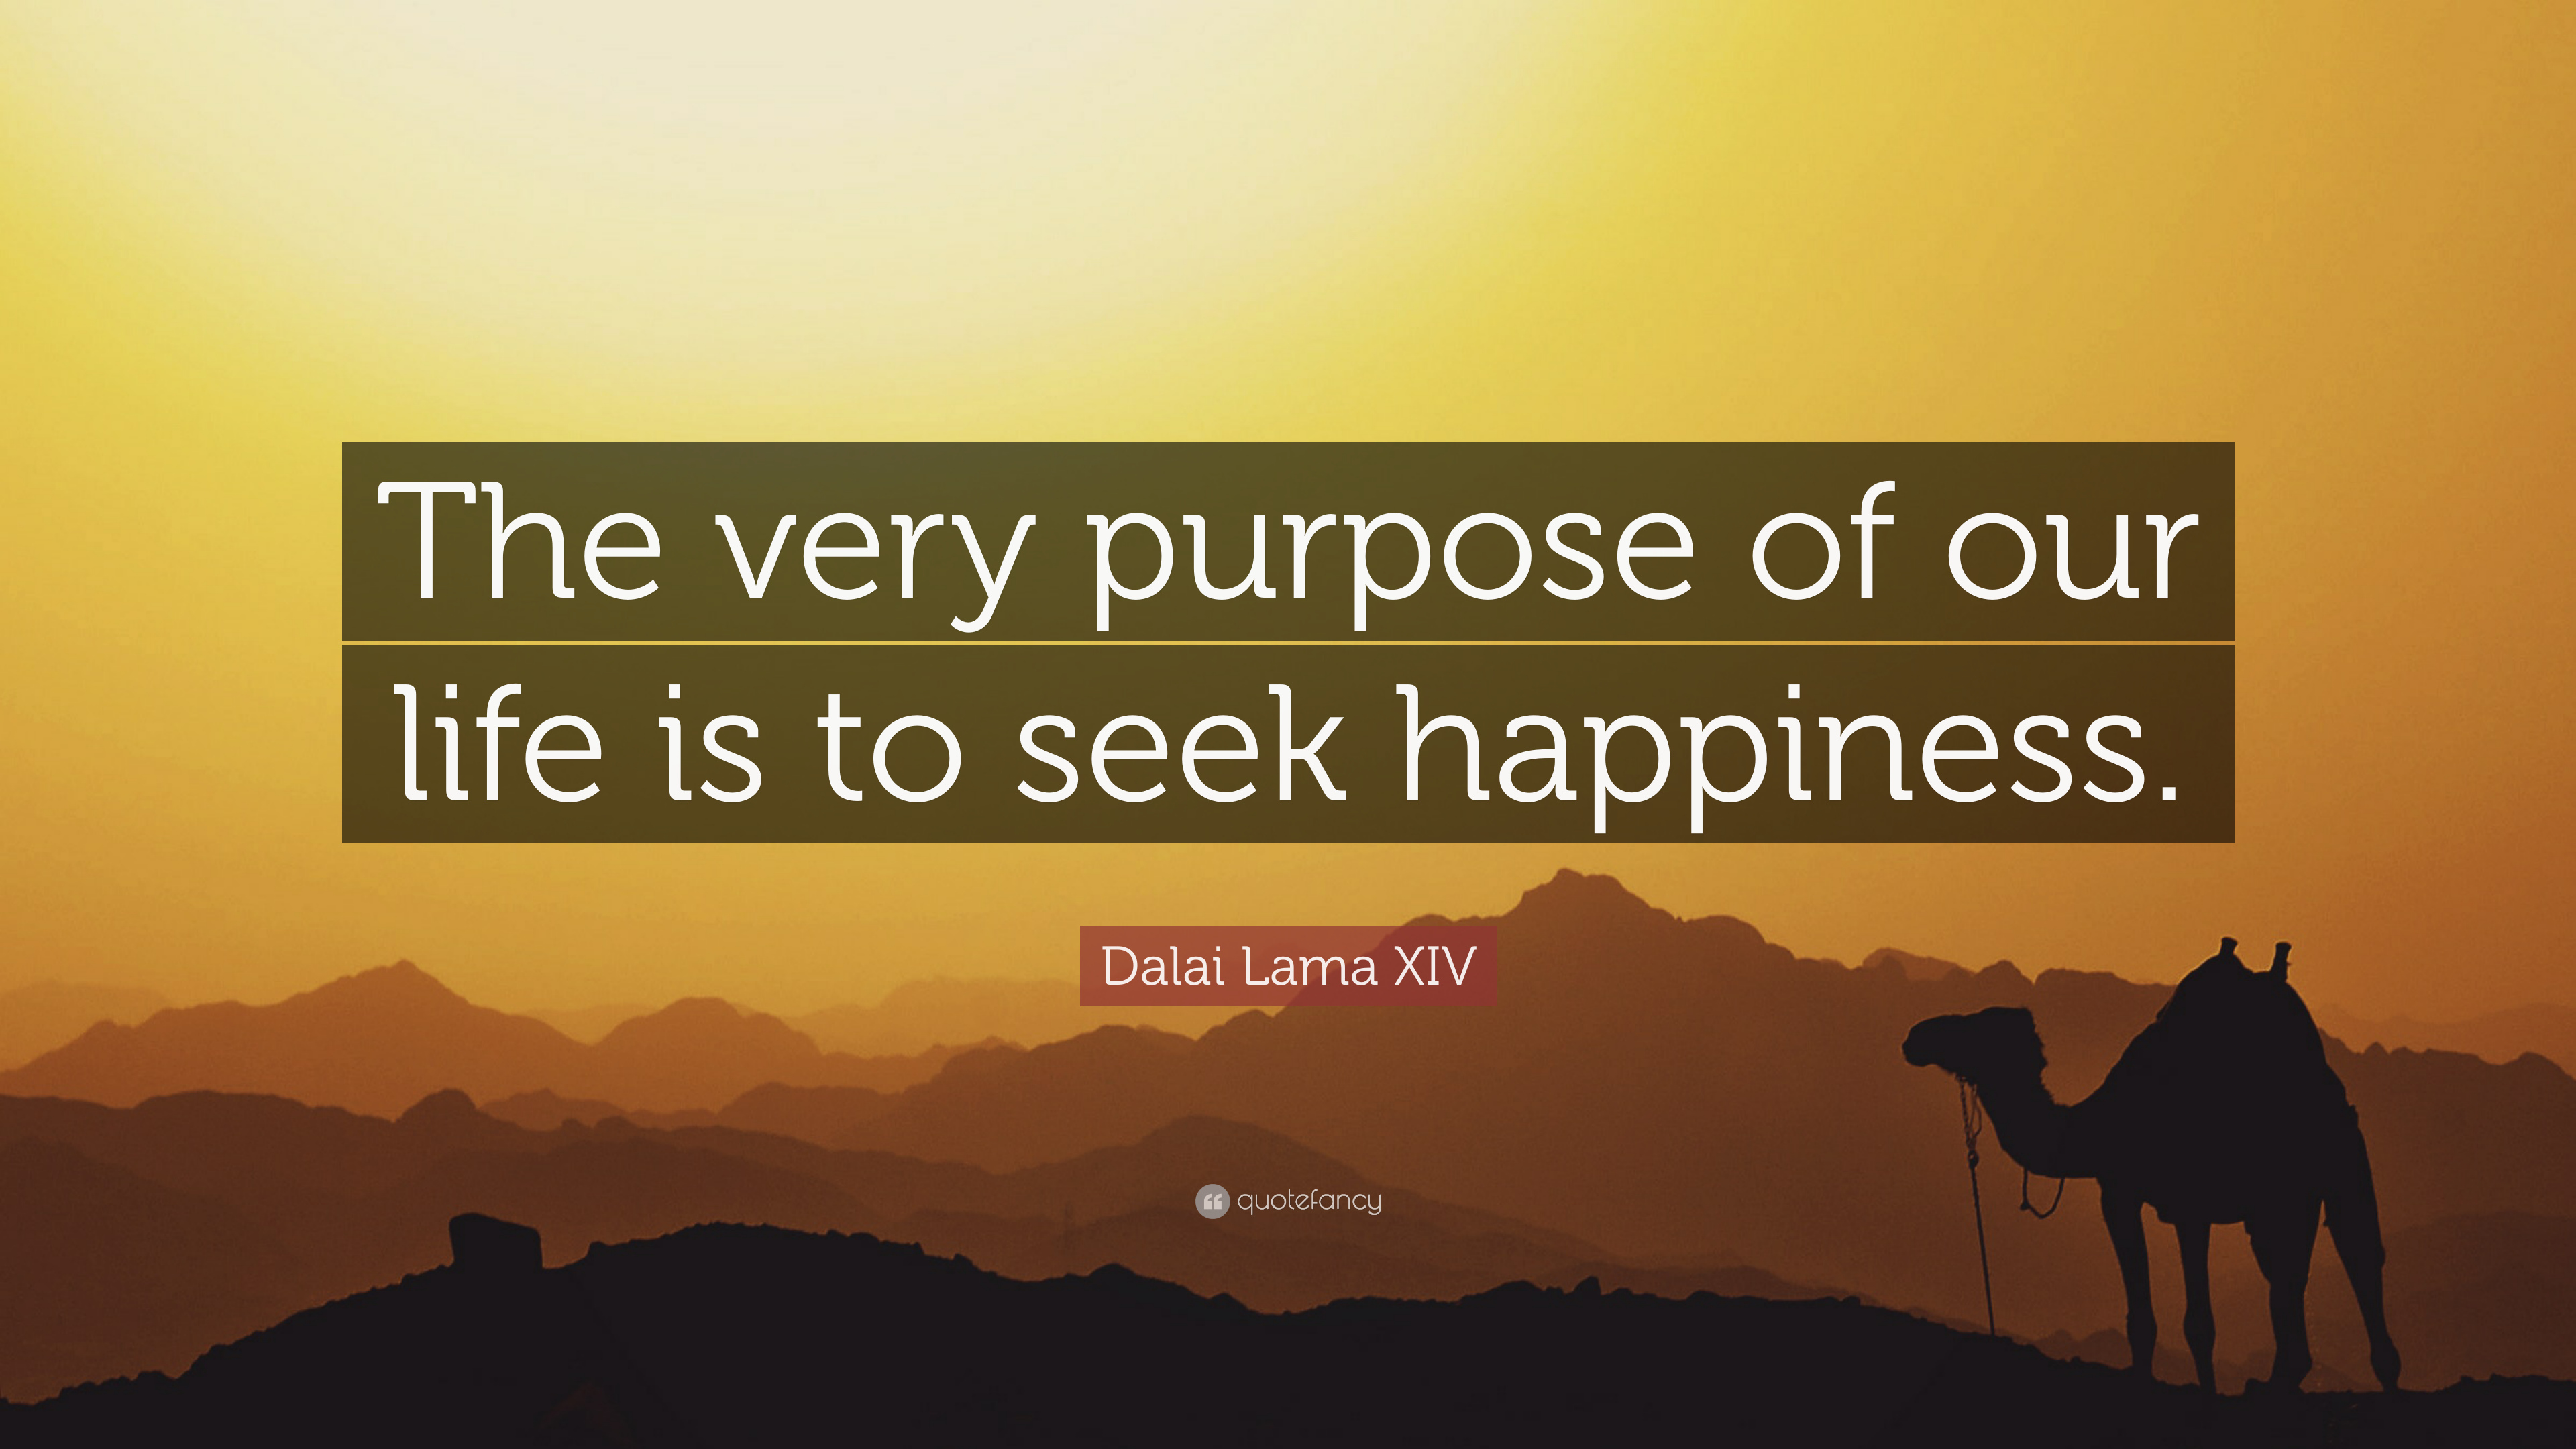 Our Happy Life Quotes: Dalai Lama XIV Quotes (100 Wallpapers)